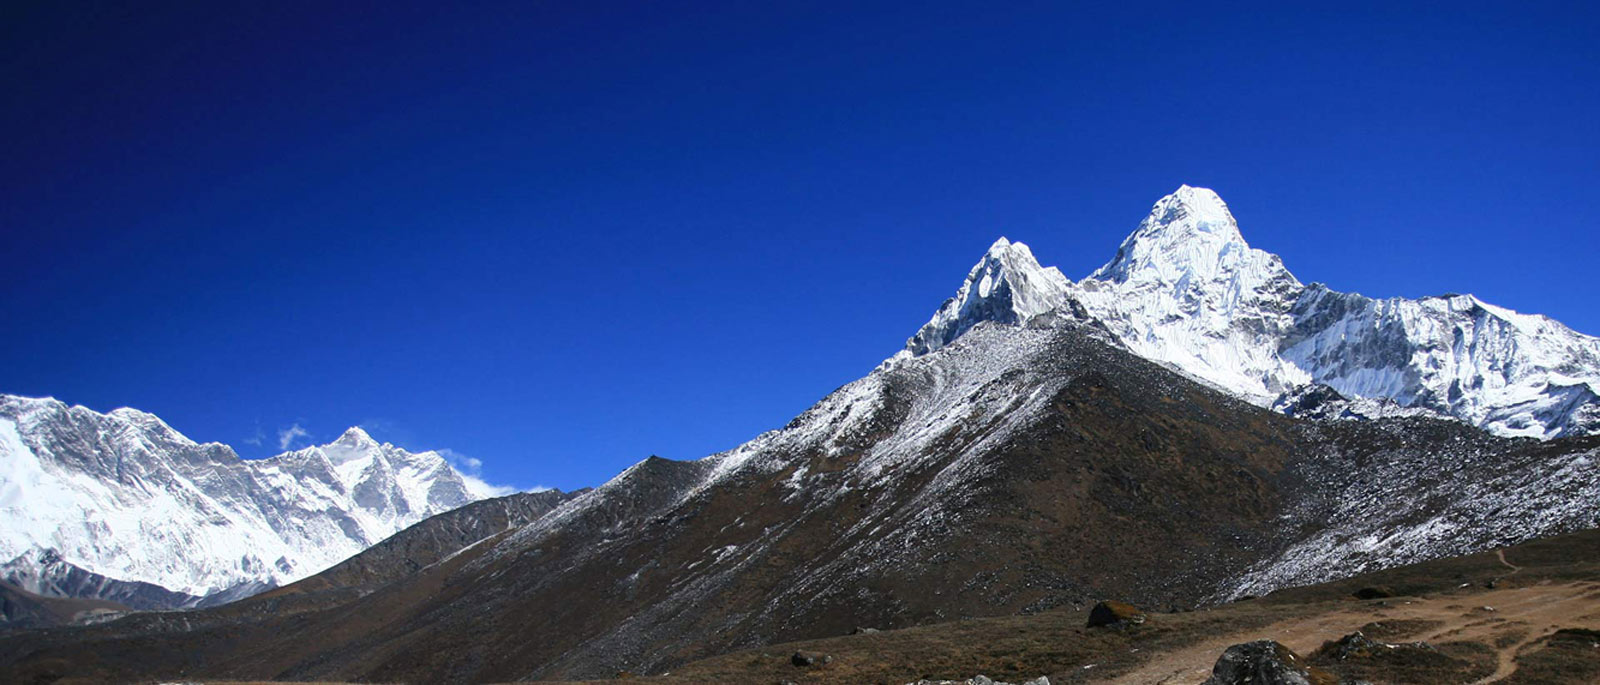 Mt. Amadablam- Everest Region Nepal